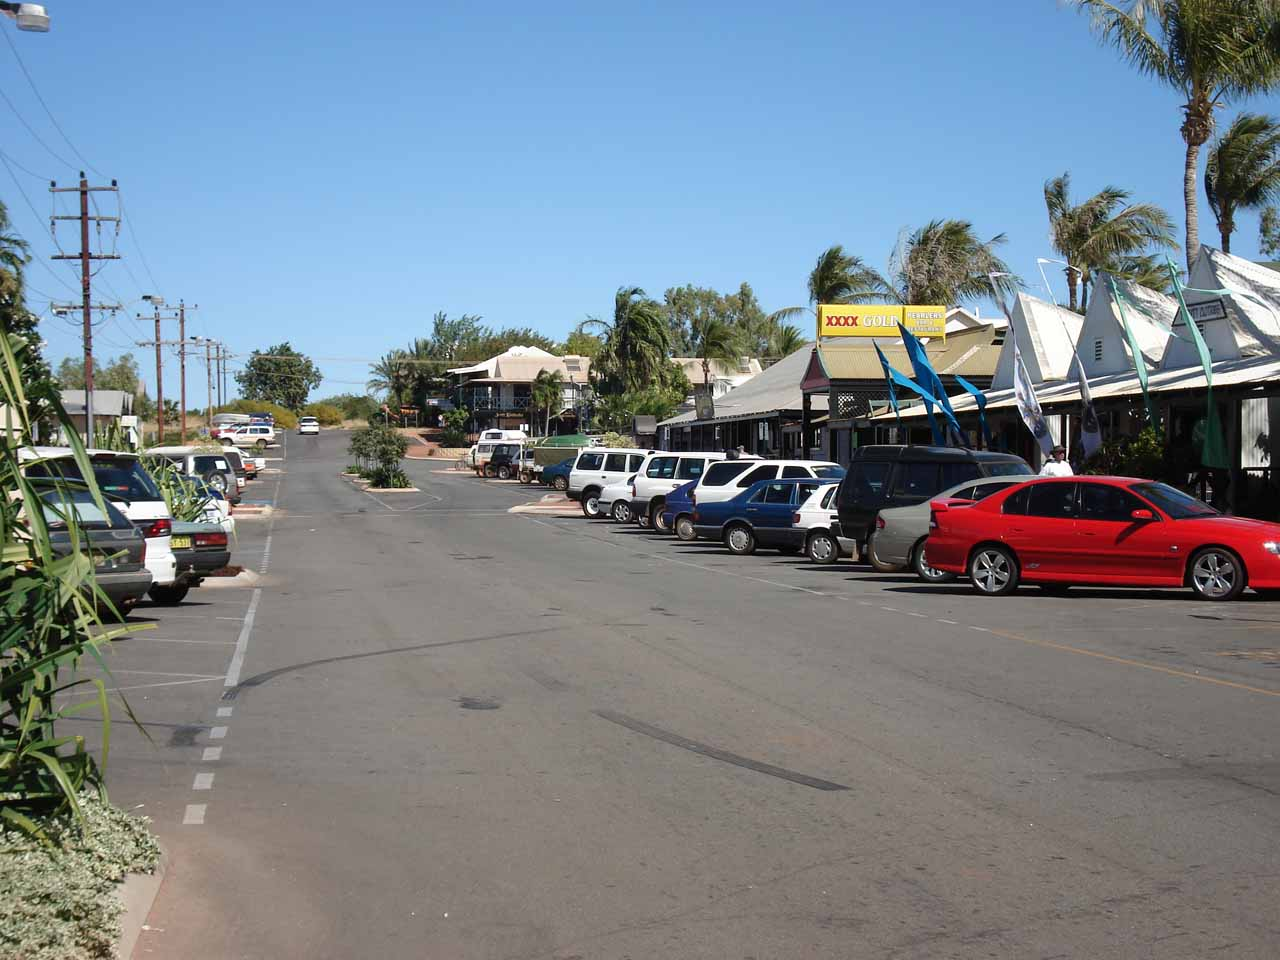 Looking along the streets of the Johnny Chi Lane in Broome